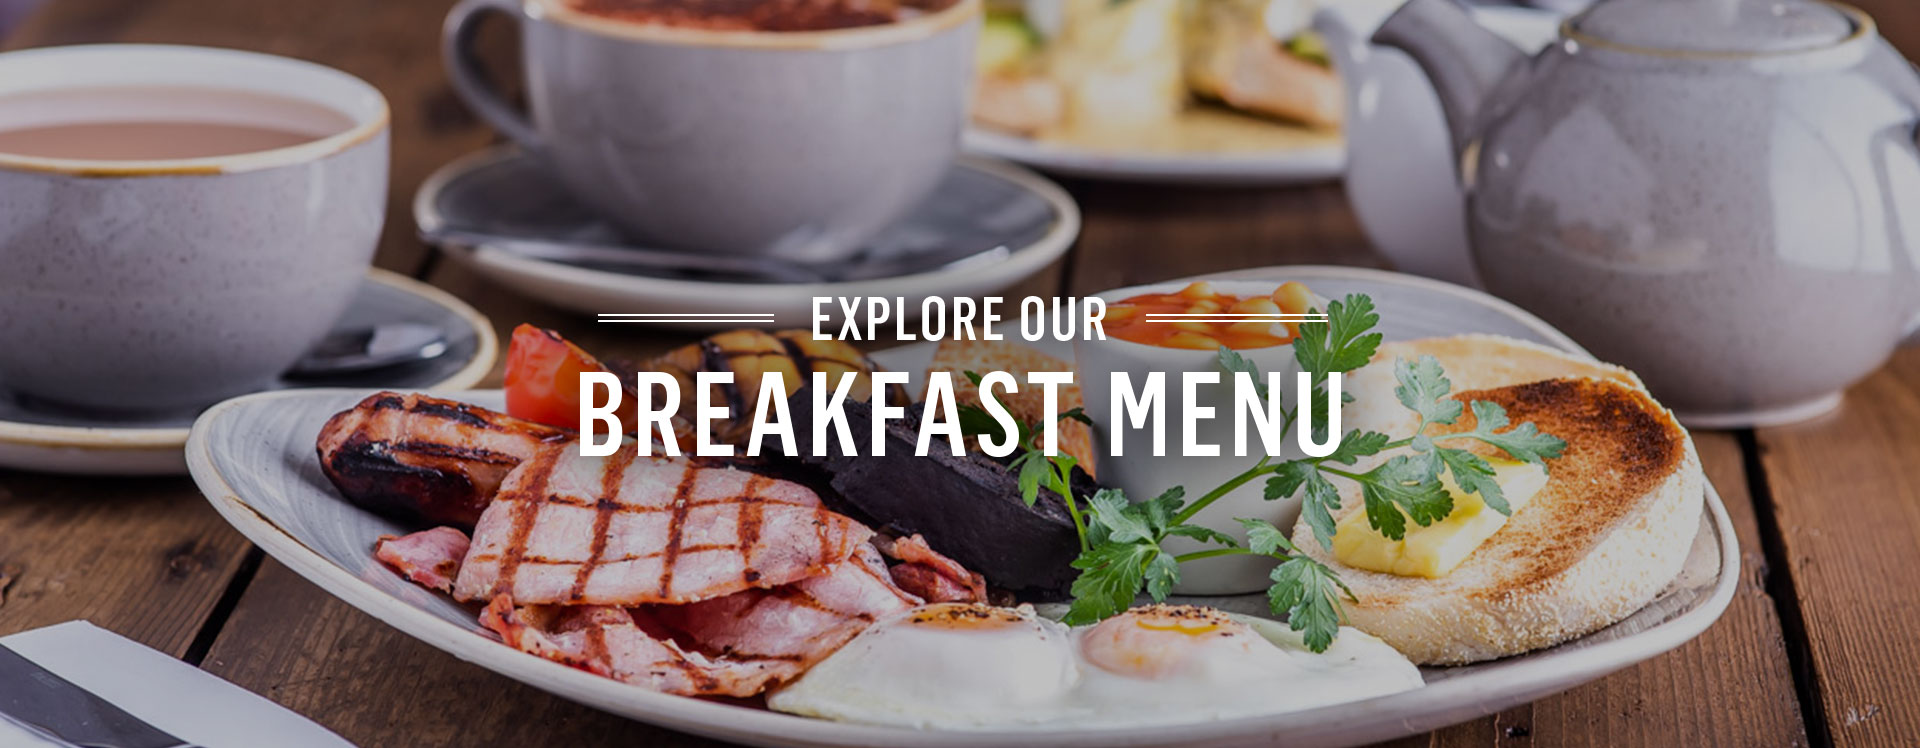 Breakfast at The Mitre Bar - Book a table